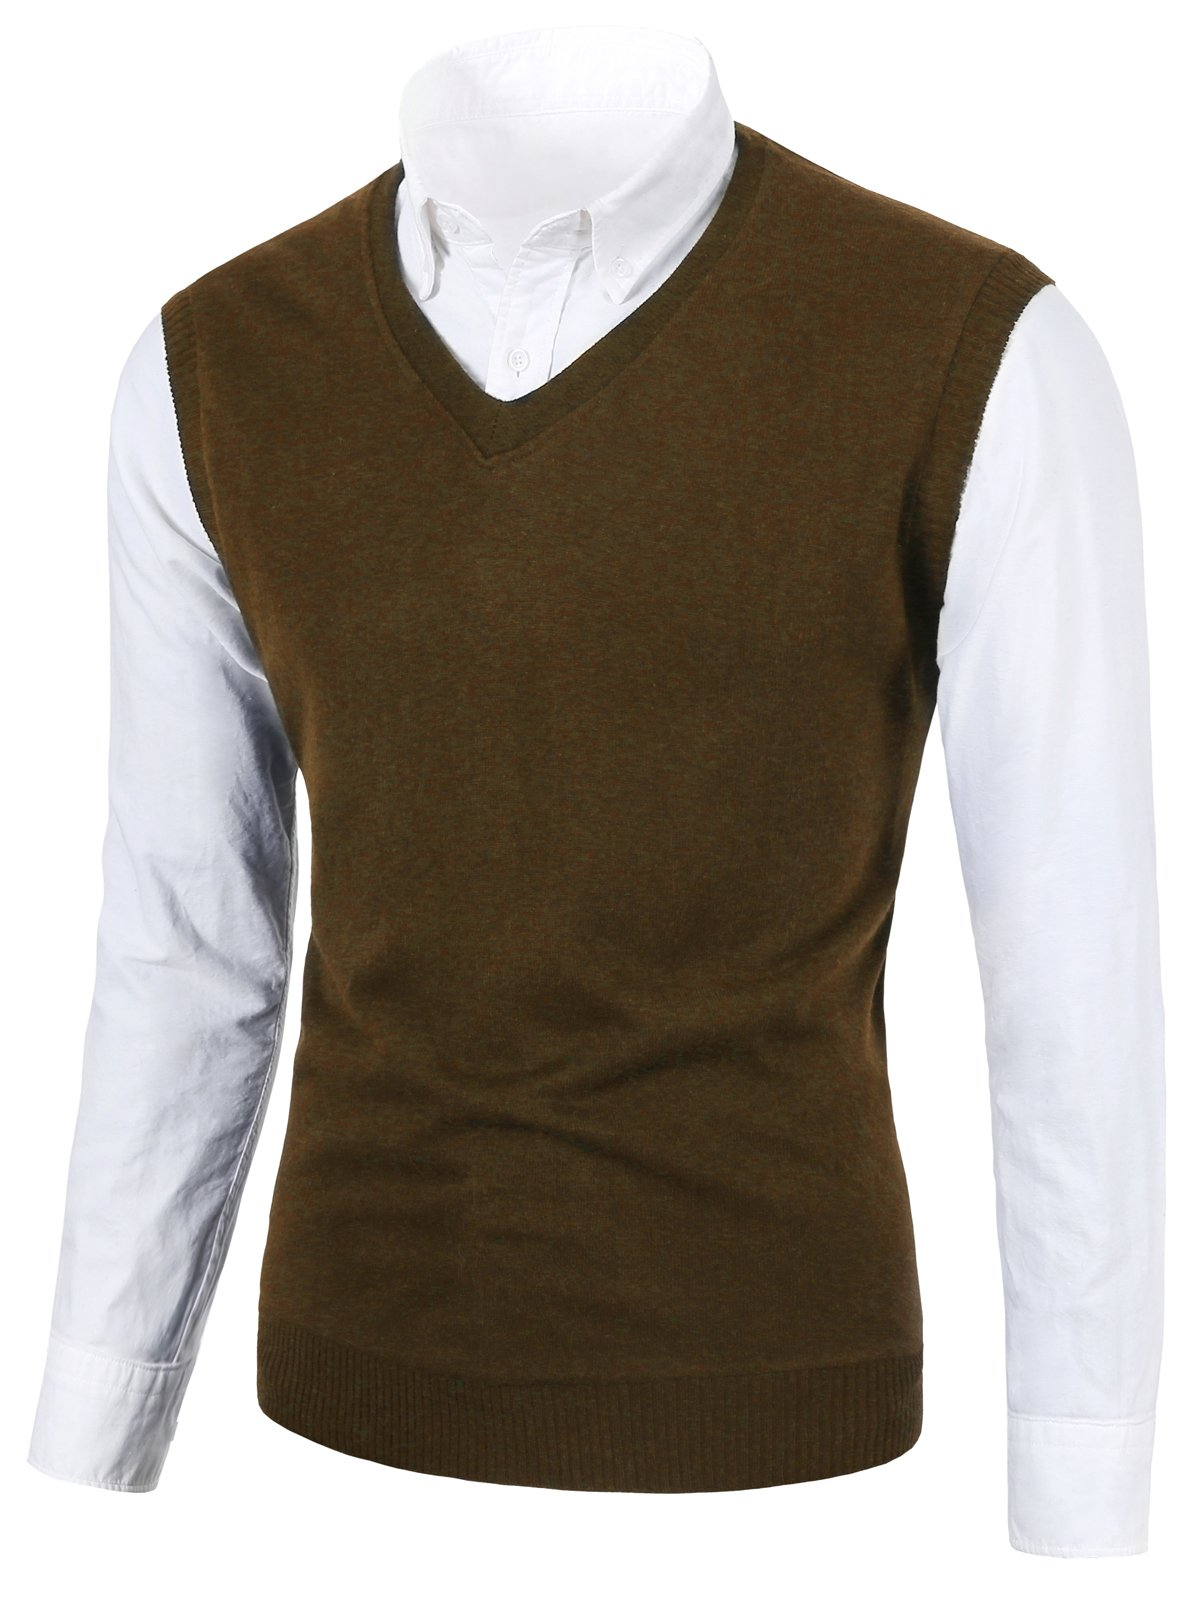 MIEDEON Mens Various Color Casual Slim Fit Knit Vest Sweater Coffee XL